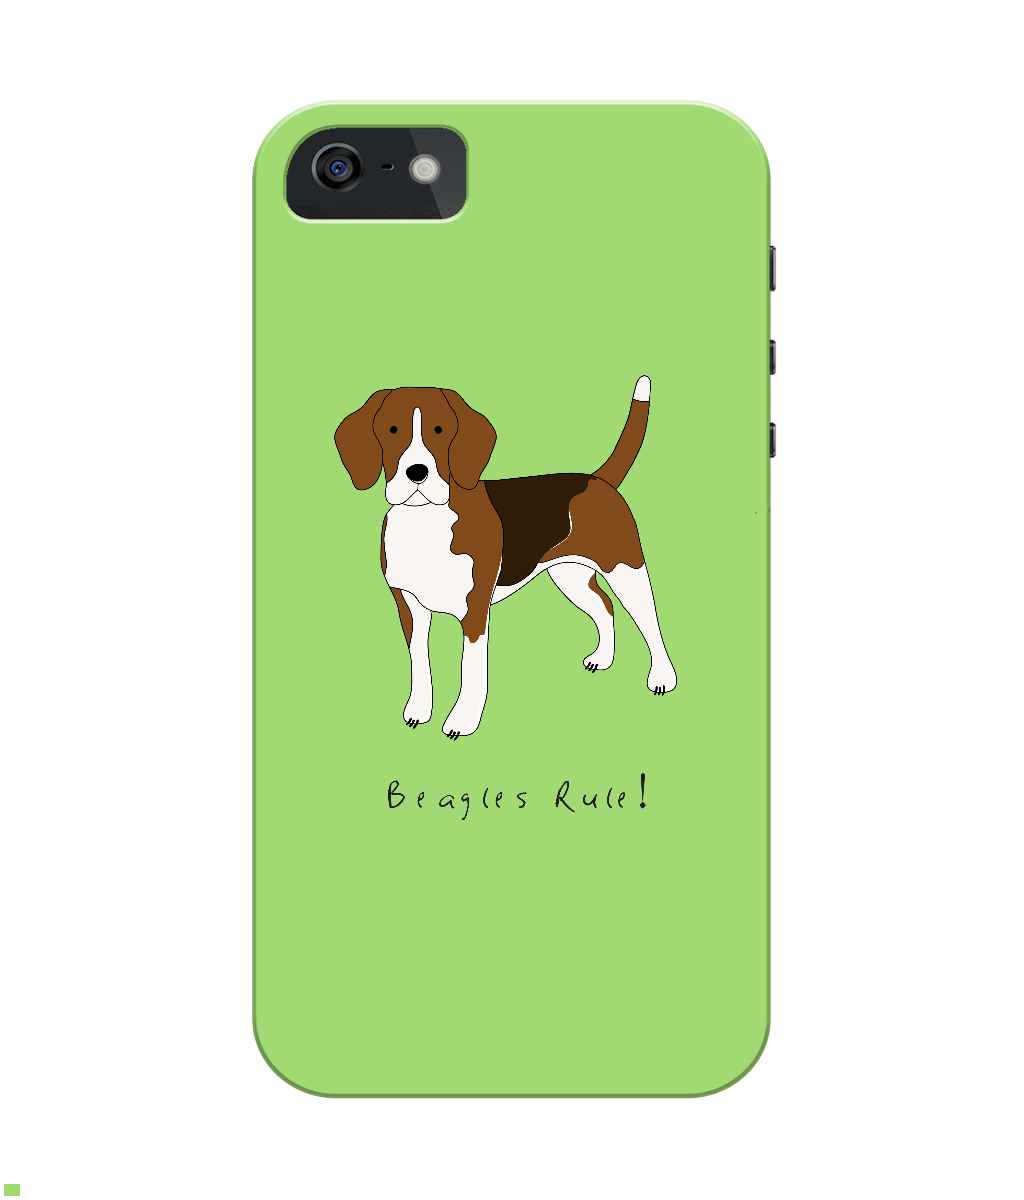 iPhone 4/4s Full Wrap Case - Beagles Rule! - Dogs Rule!